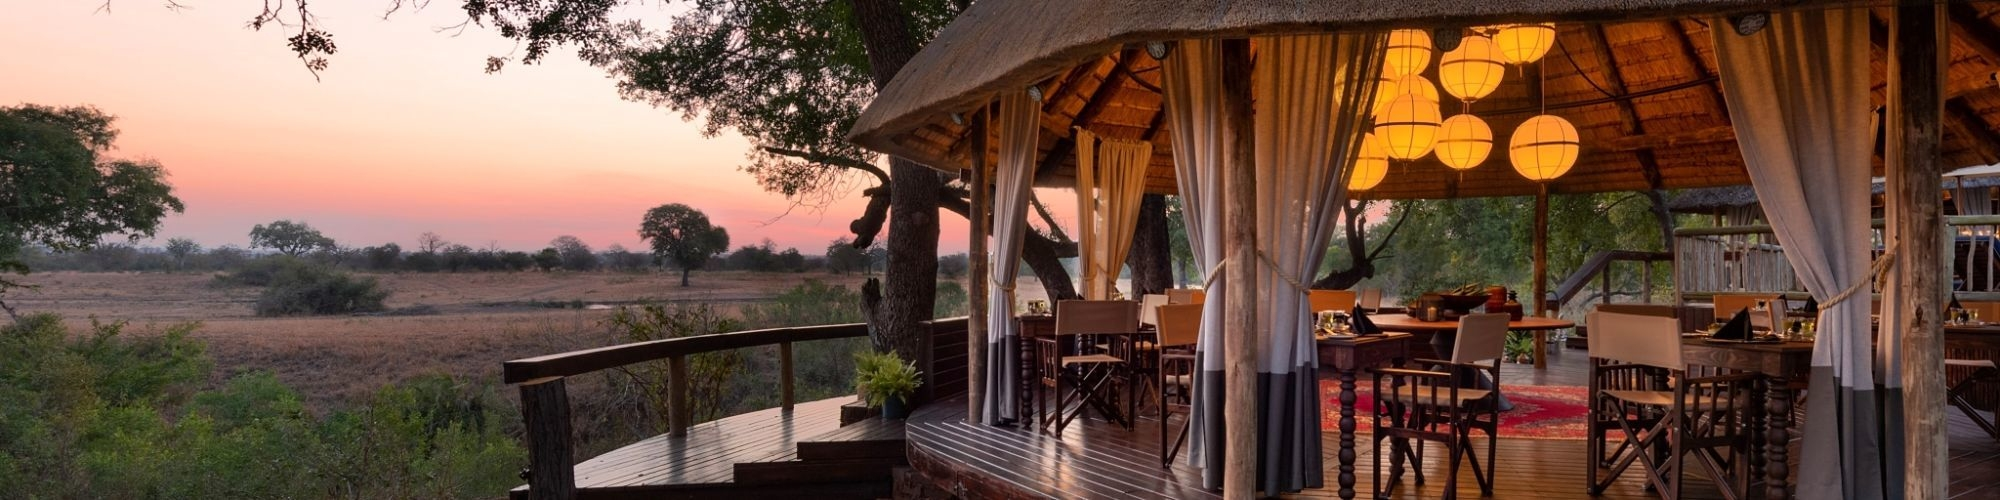 Sabi Sabi Selati Camp, safari deck banner